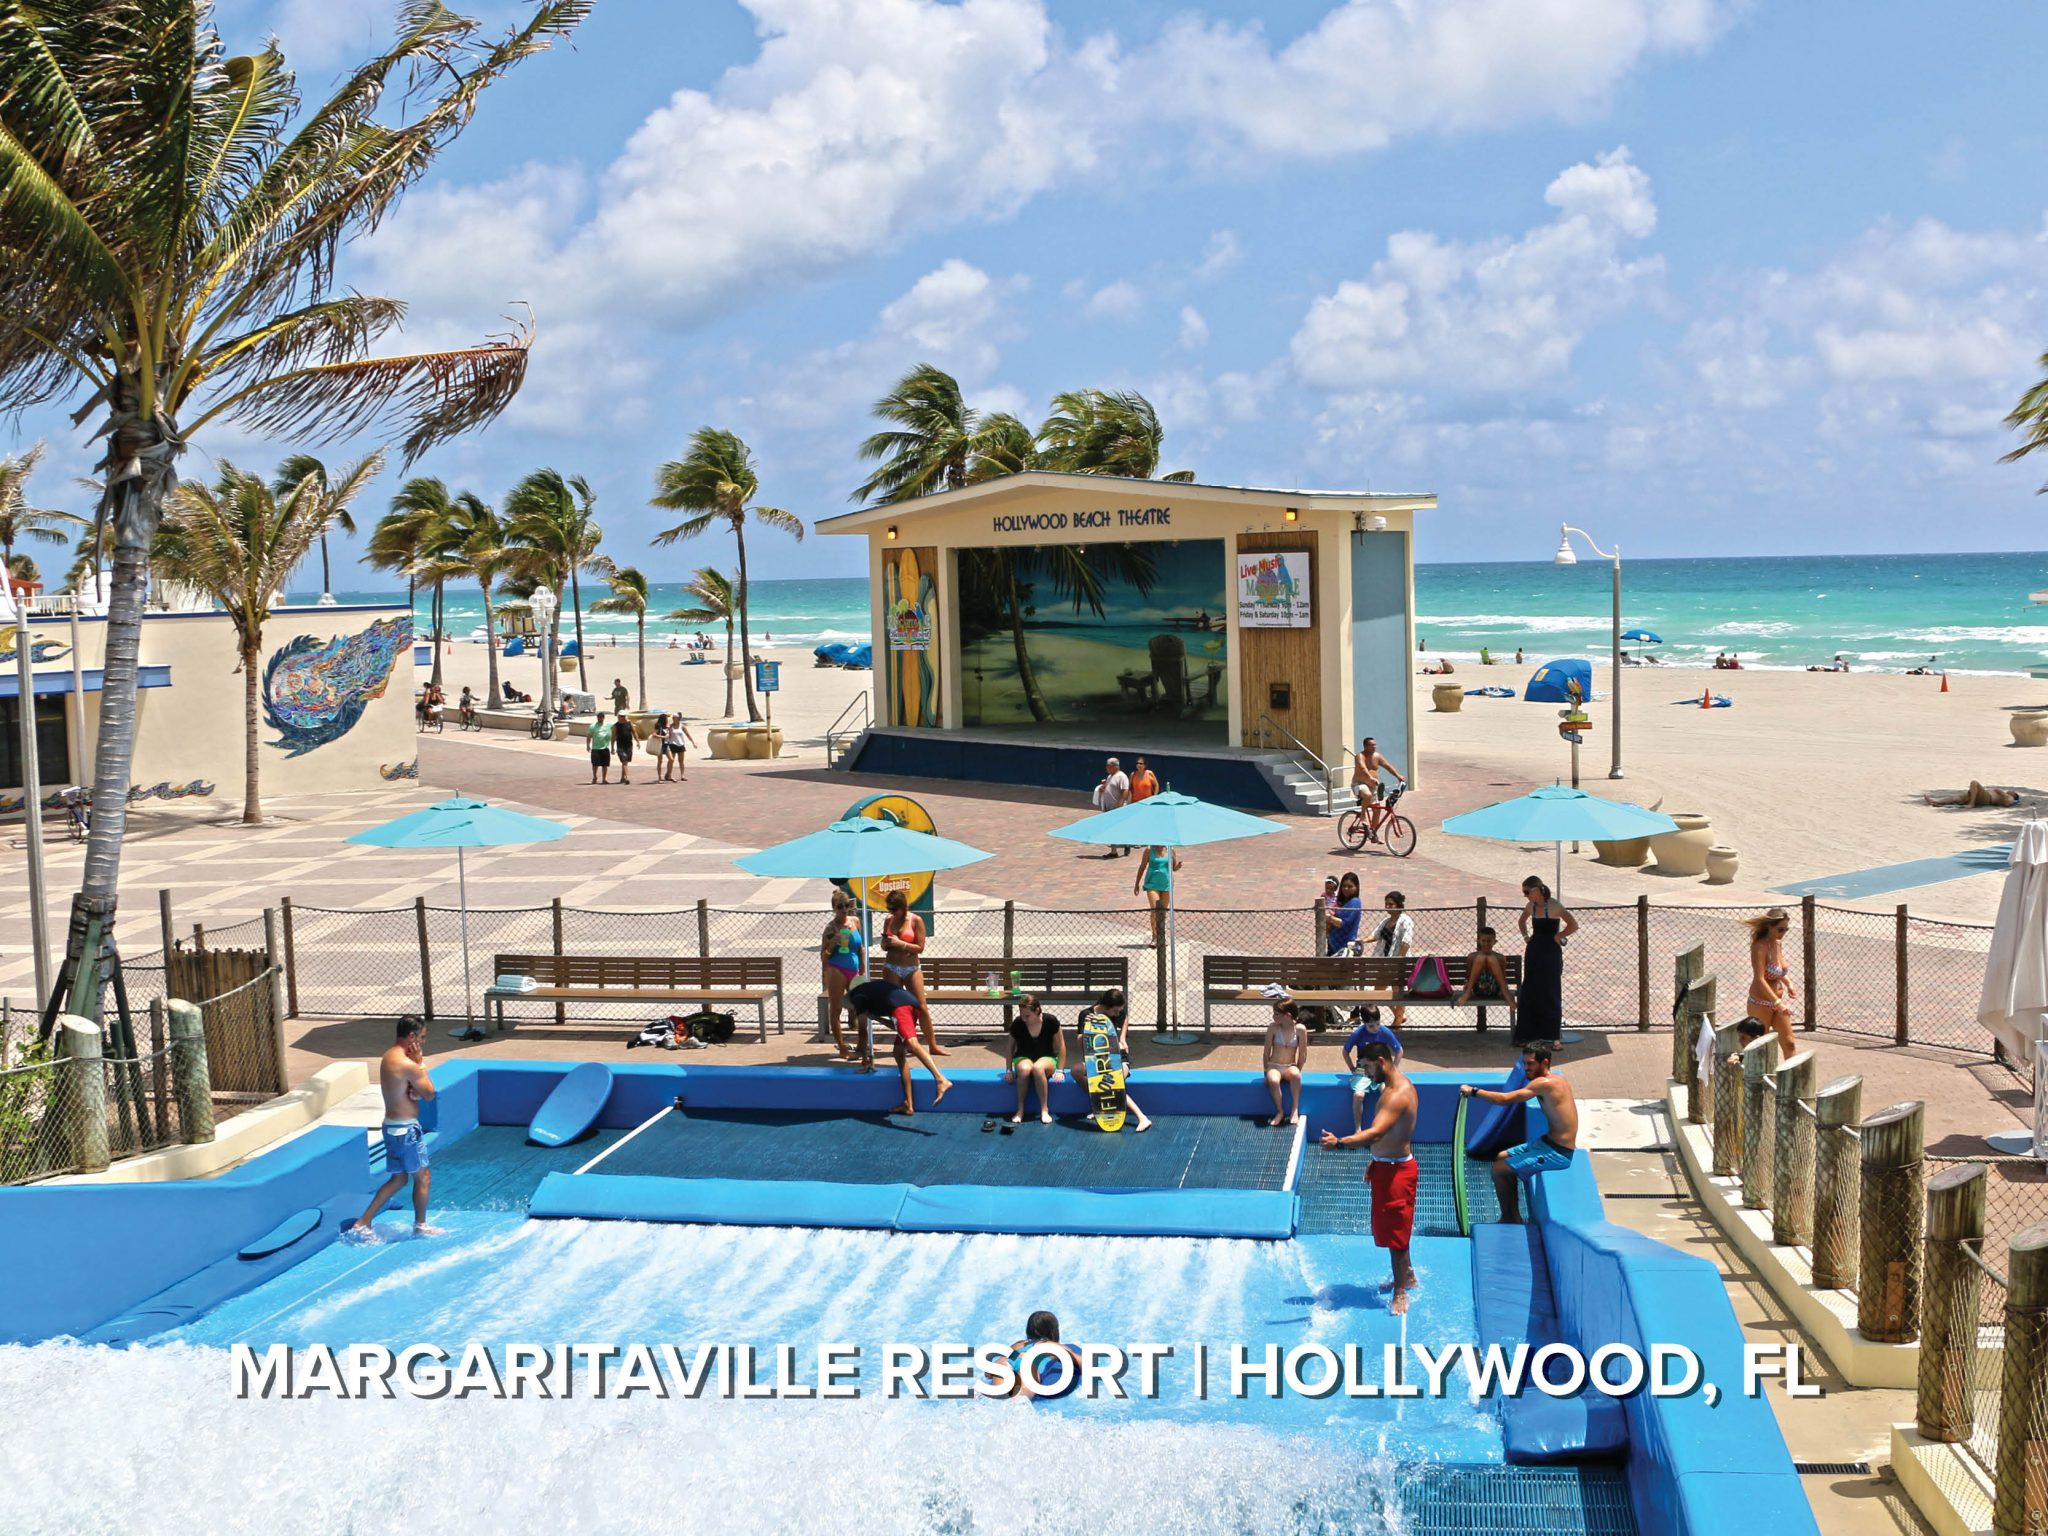 Magaritaville Beach Resort